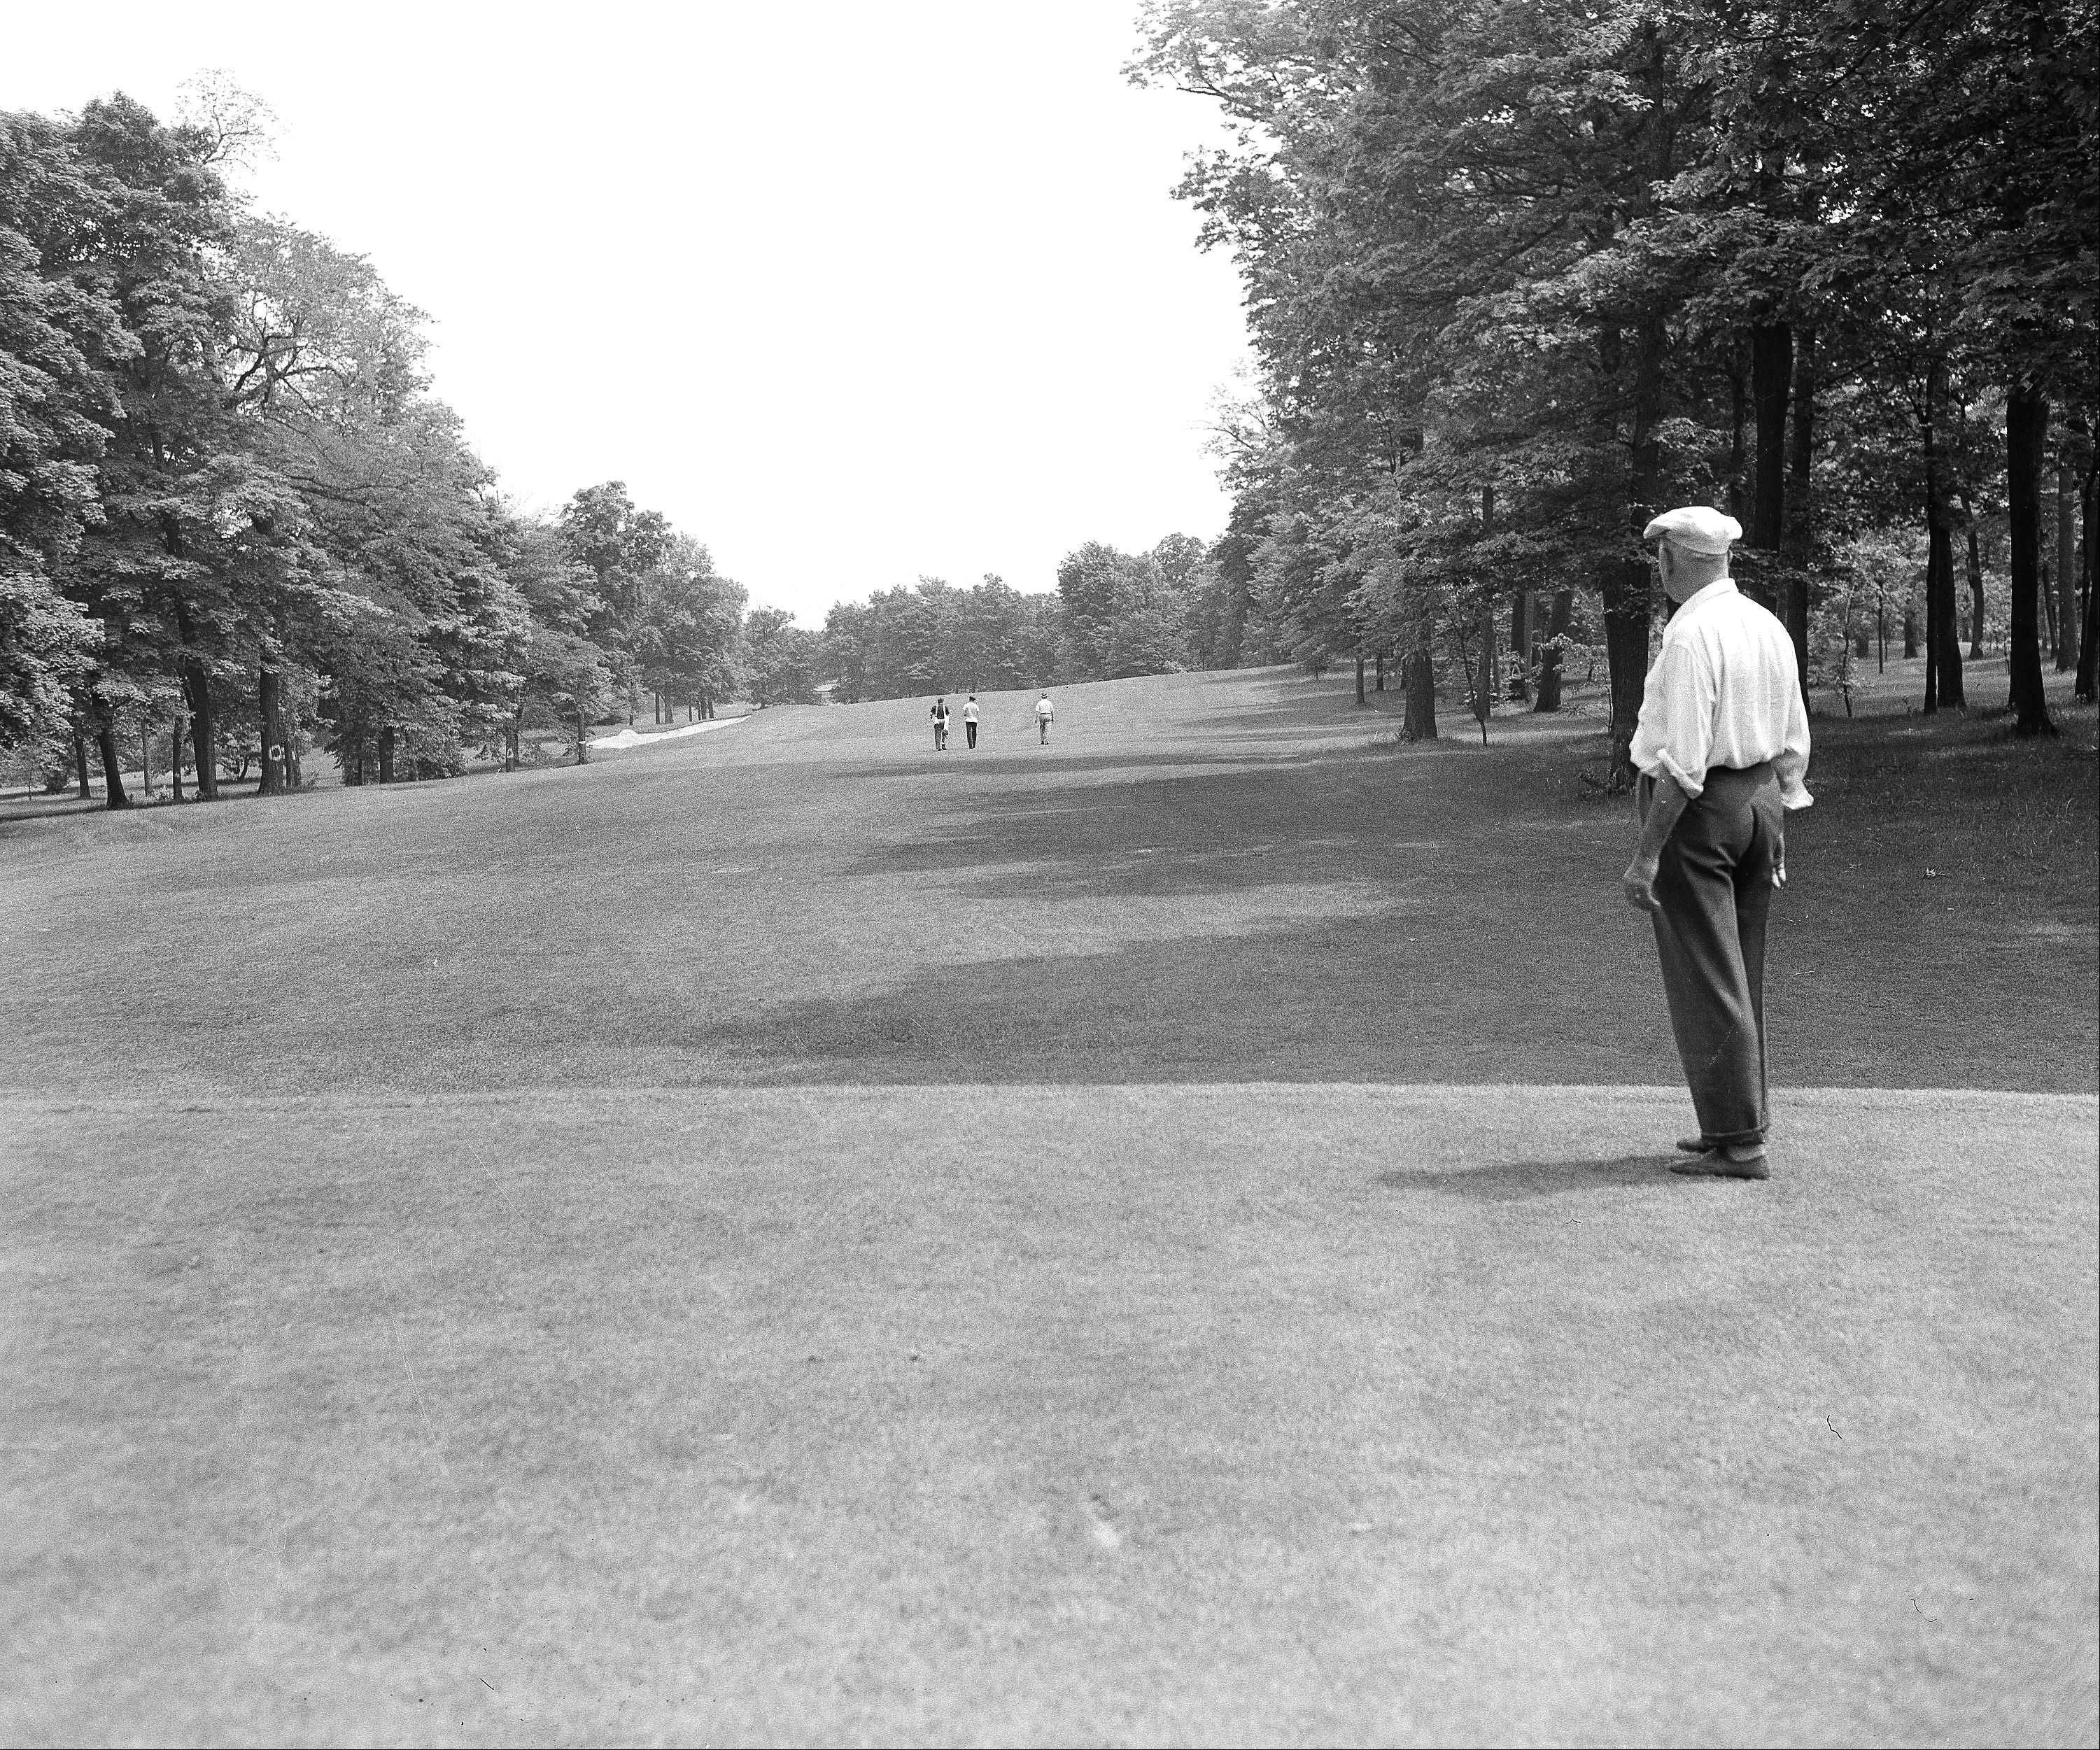 This is the No. 1 tee of the Medinah County Club, Illinois on June 3, 1949, where the National Open Golf Championship Match will be held on June 9, 10 and 11. There are few, if any, easy holes over the course. The green is beyond the sand-trap in the distance. Par for the course, years ago is the best tournament total for the course.